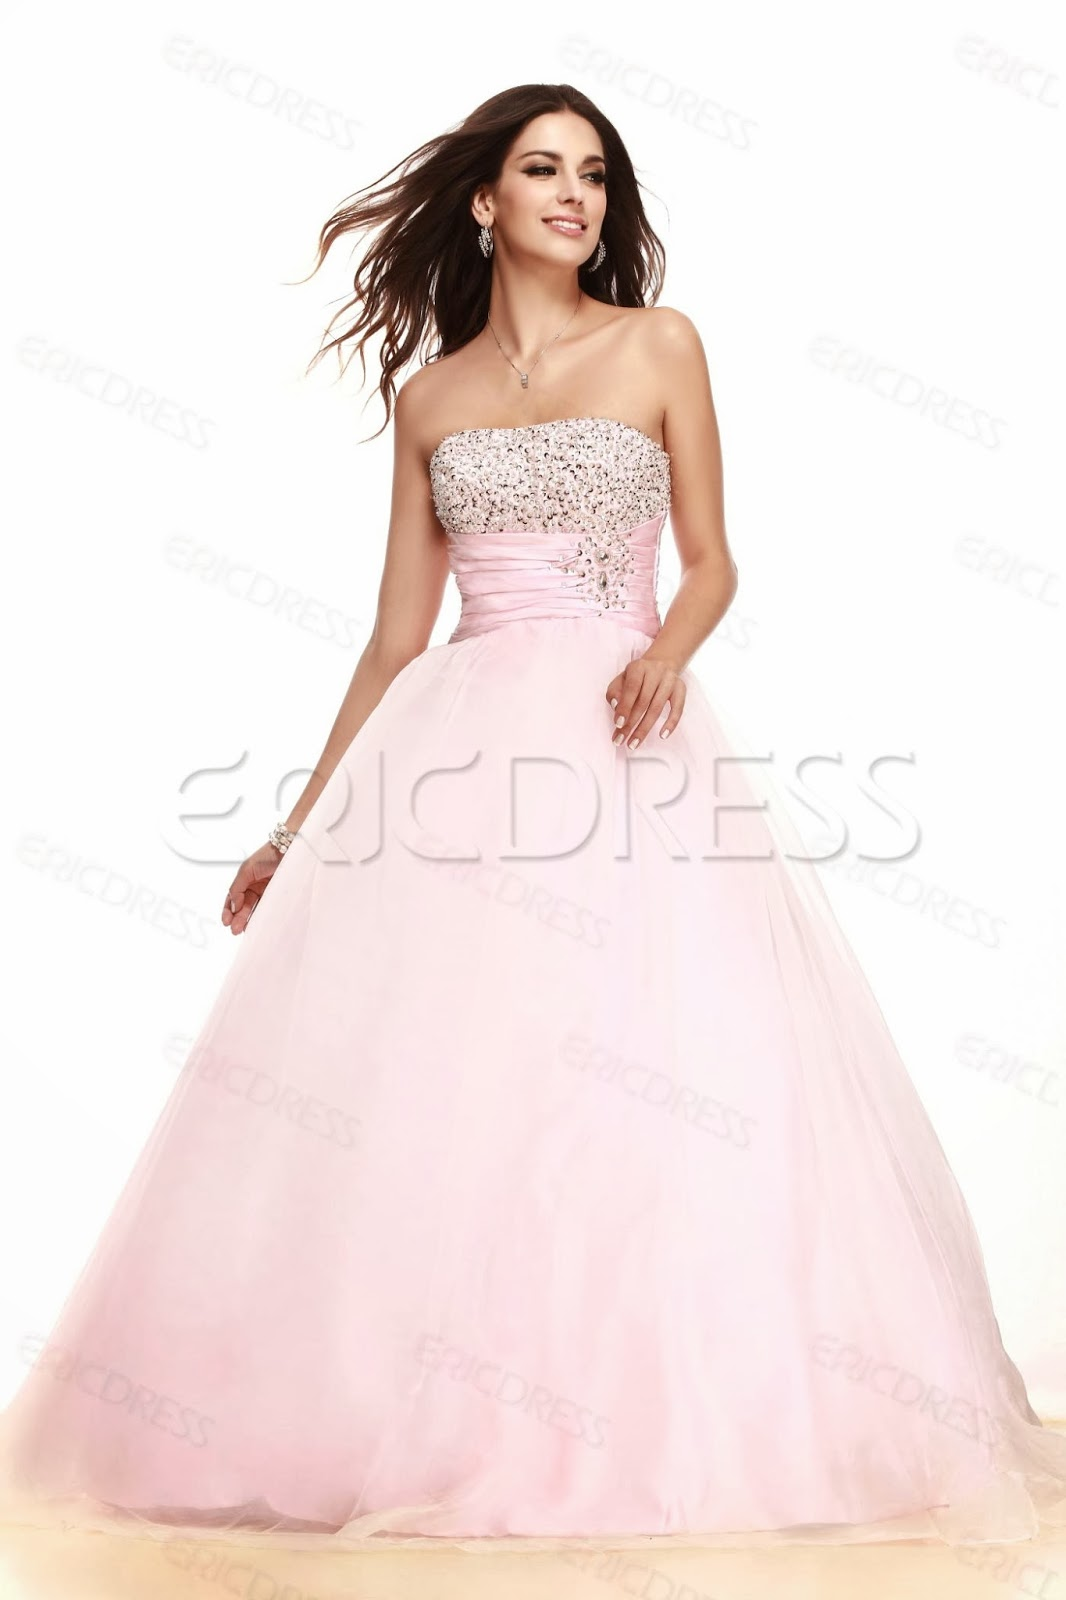 http://www.ericdress.com/product/Brilliant-A-Line-Strapless-Floor-Length-Empire-Waistline-Talines-Ball-Gown-Prom-Dress-9672578.html